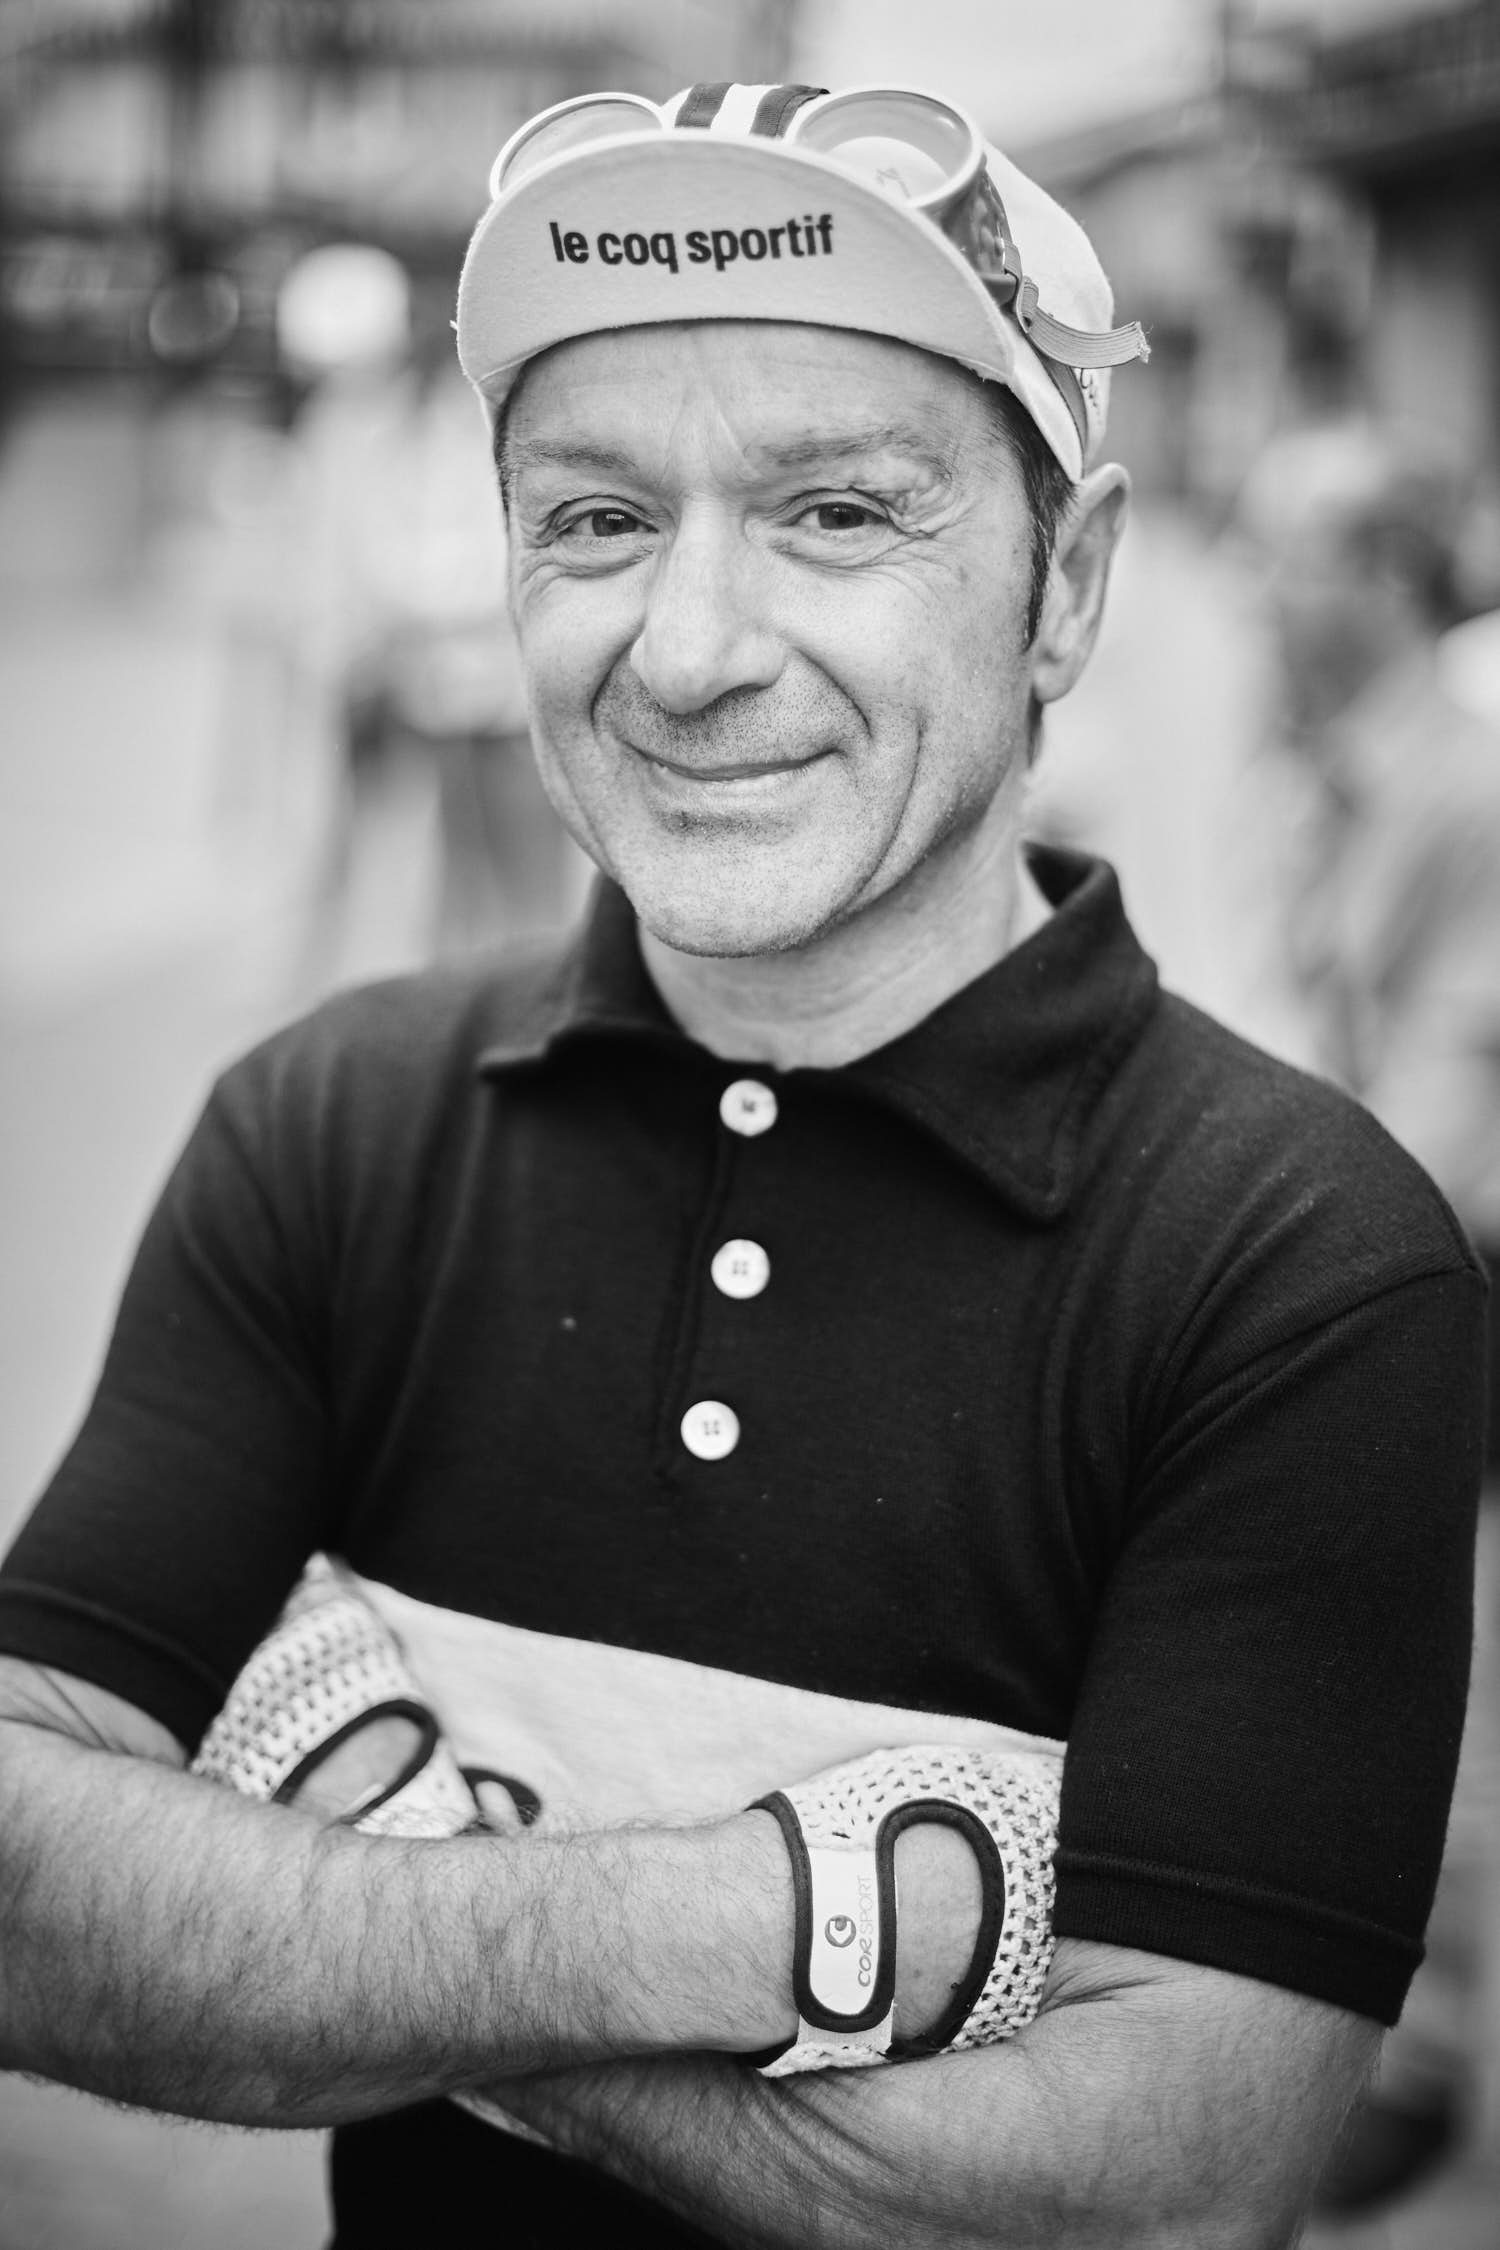 Portrait of a cyclist part of the L'Eroica an annual non-competitive cycling event.The theme of the event is vintage cycling, with participants using vintage (pre-1987) bikes, accessories and clothing, and the route often including unpaved roads. Cenicero, La Rioja. Spain. Documentary, le coq sportif, cycling, colnago, photographer, Arkaitz Saiz, Ark Saiz, videographer, climbing, climb, video, photo, foto, documental, fotografia, naturaleza,